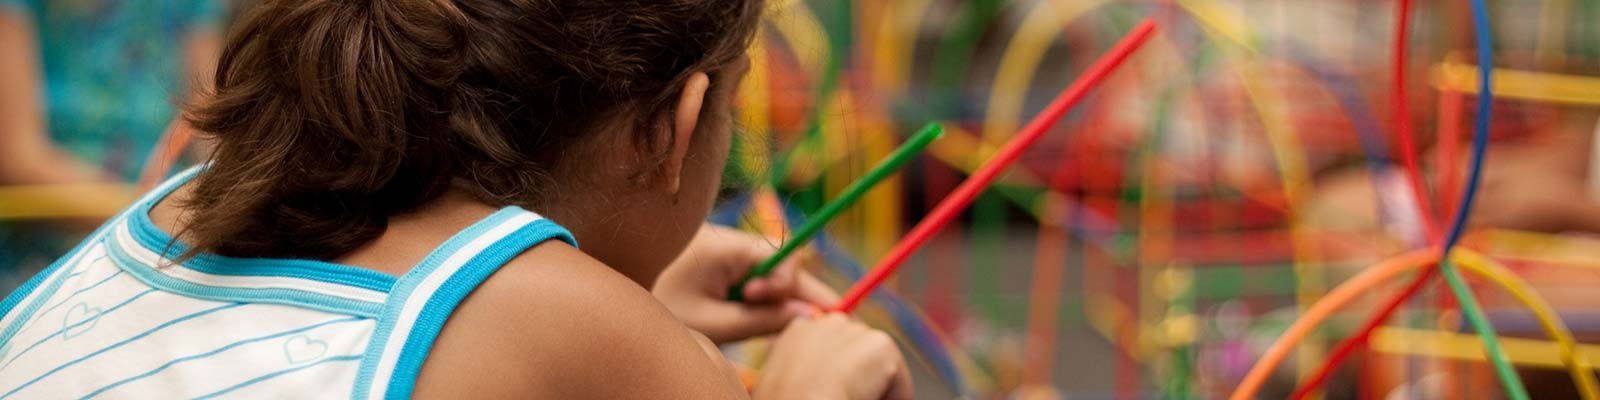 Girl Playing in a Play Place